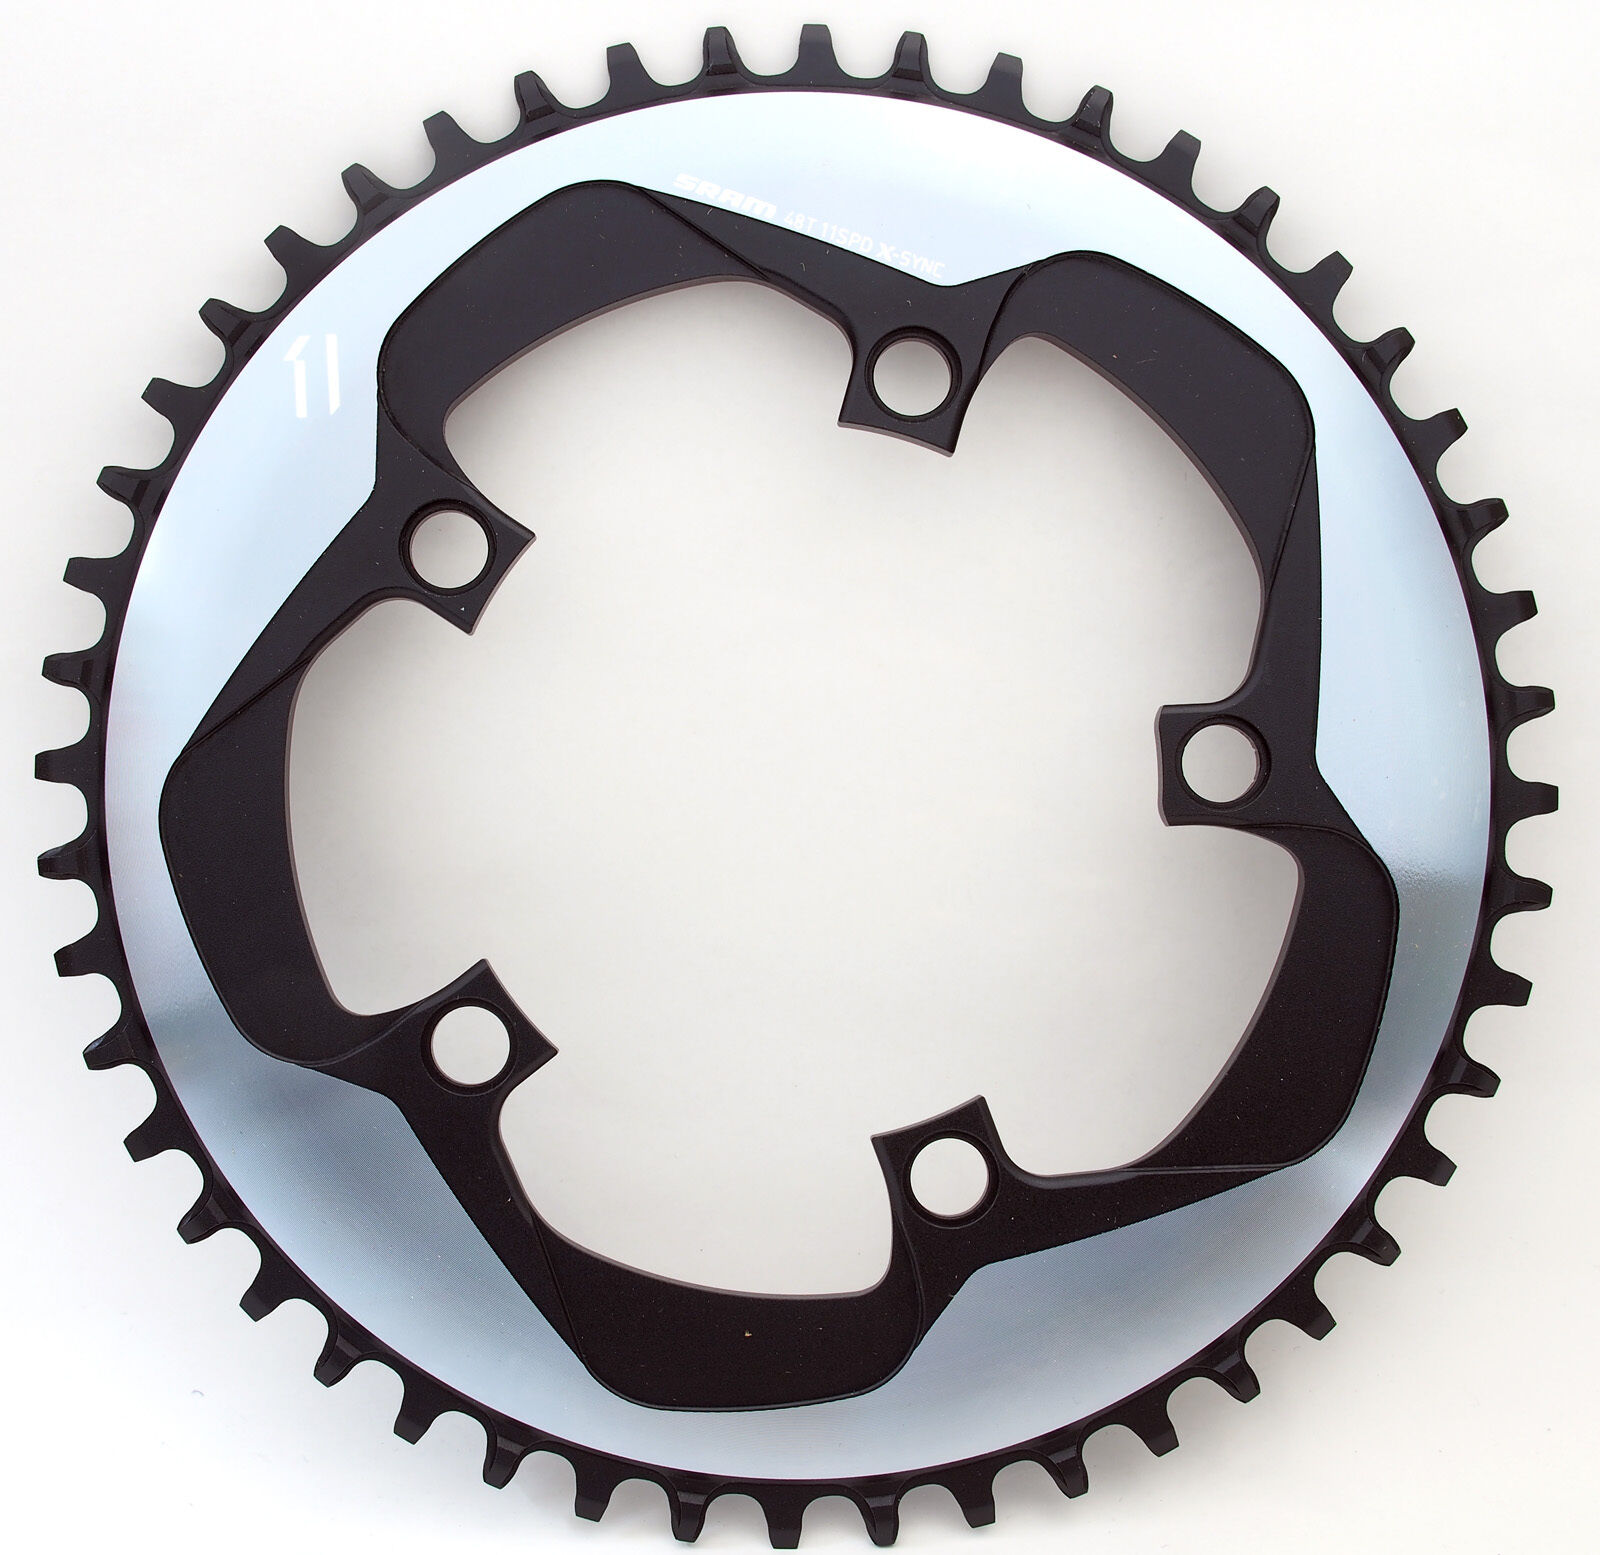 SRAM FORCE 1  CX1 CycleCross X-Sync Narrow Wide Chainring 48T 10 11 Spd BCD 110mm  simple and generous design